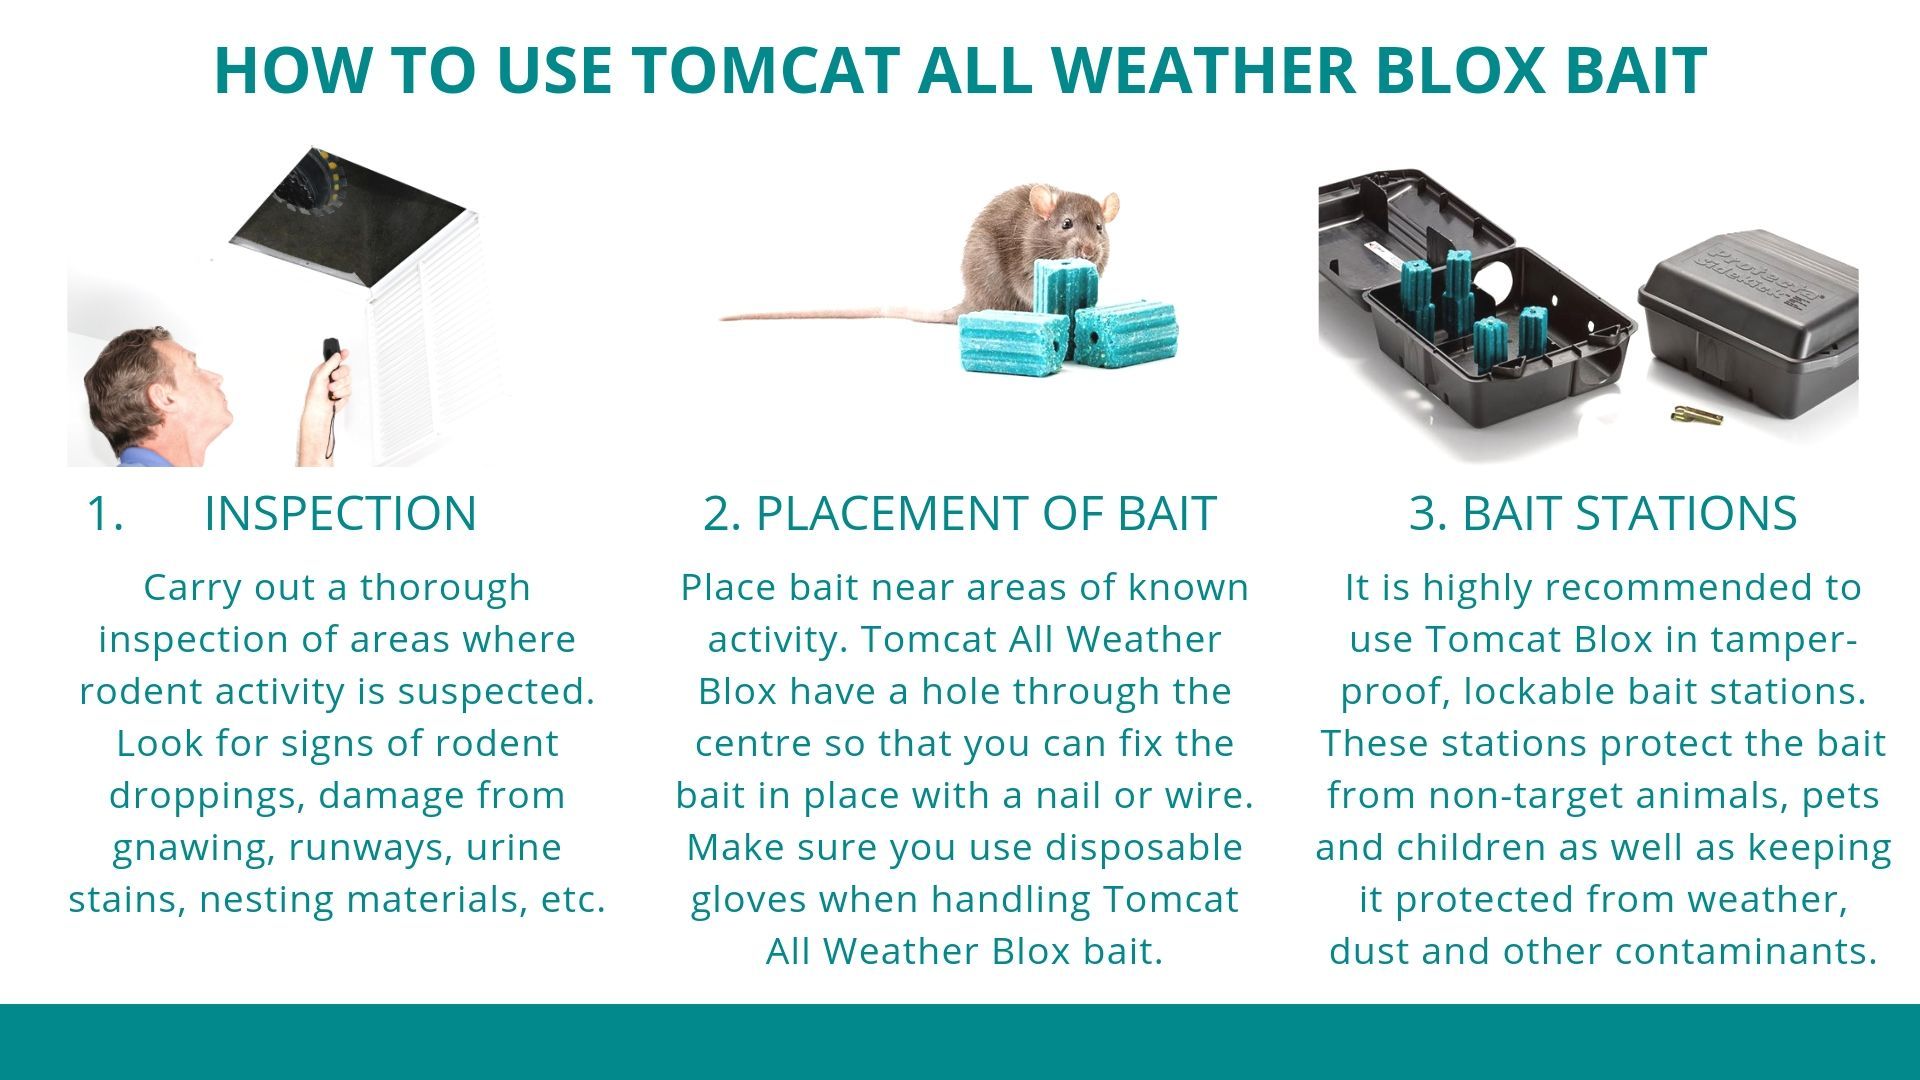 How to use Tomcat All Weather Blox Bait